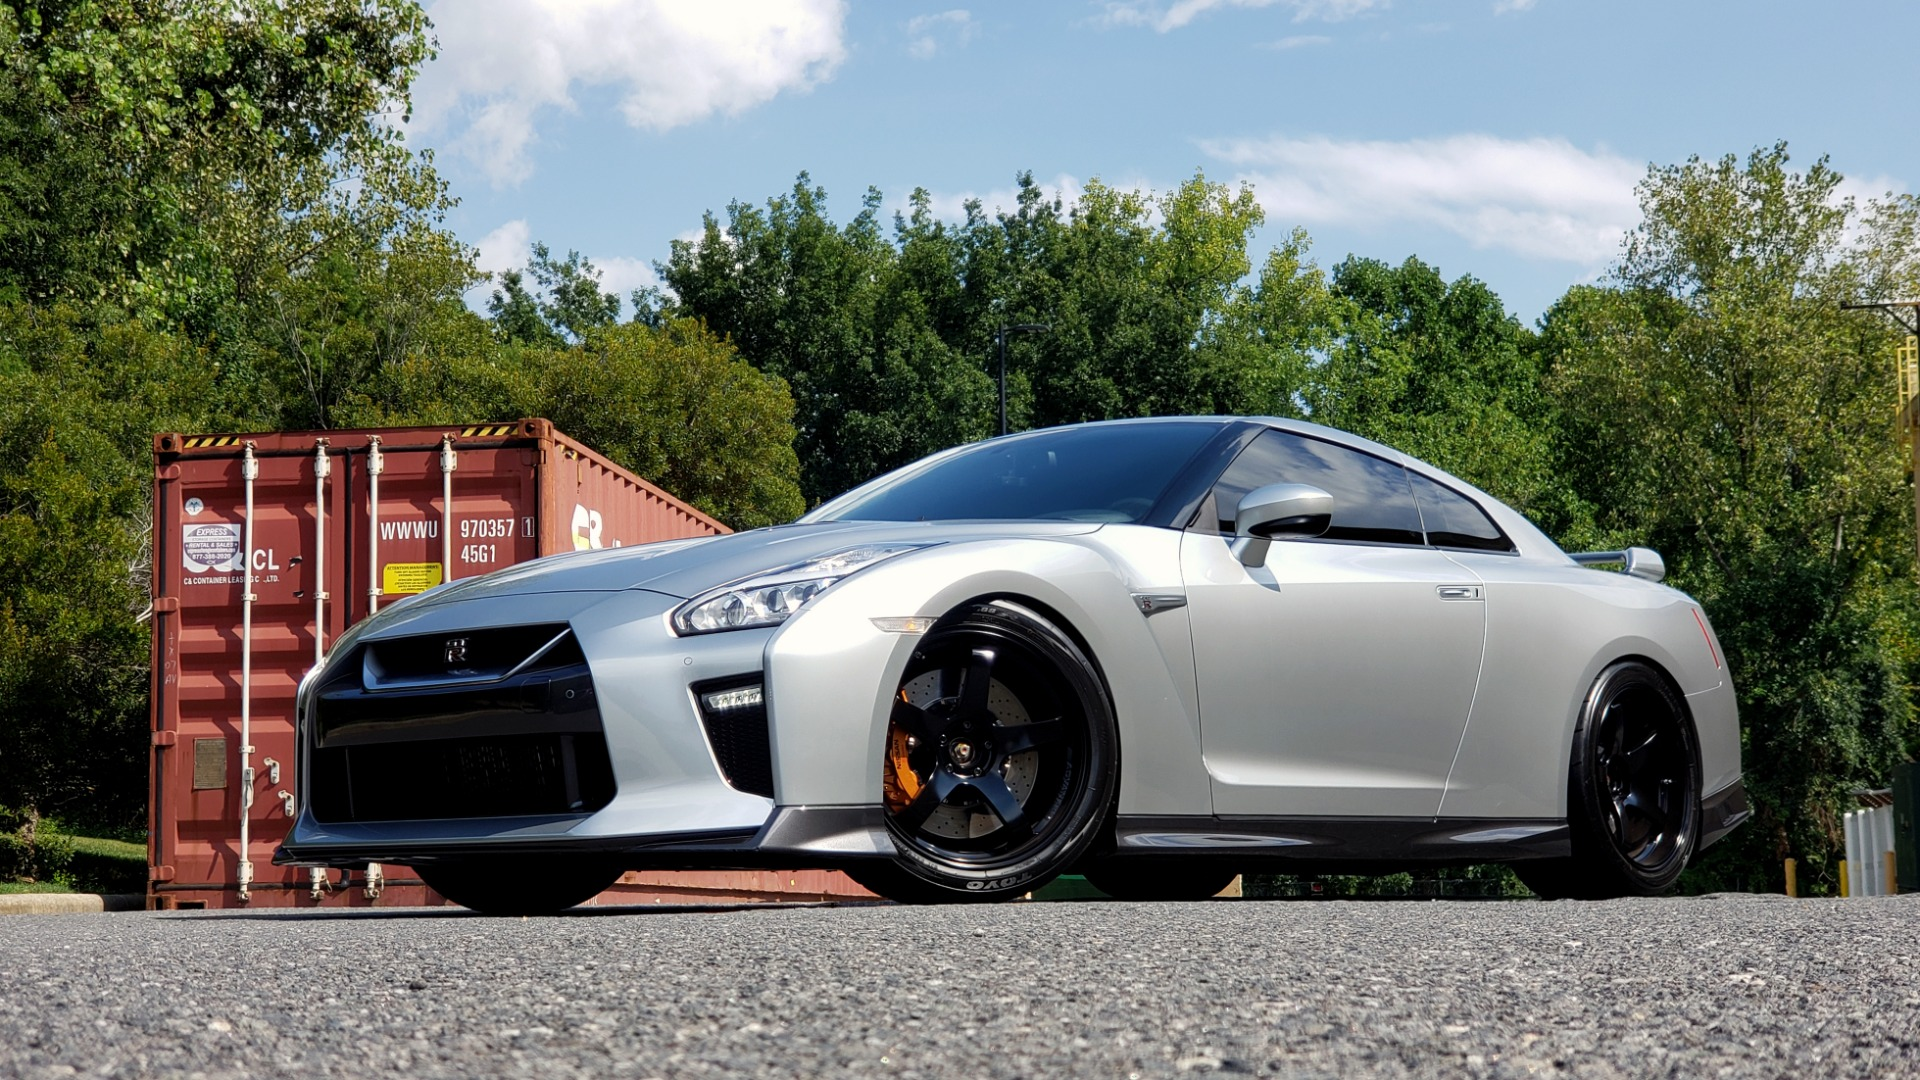 Used 2018 Nissan GT-R PREMIUM / NAV / BOSE / REARVIEW / CUSTOM WHEELS / COIL OVER SHOCKS / TUNED for sale Sold at Formula Imports in Charlotte NC 28227 1